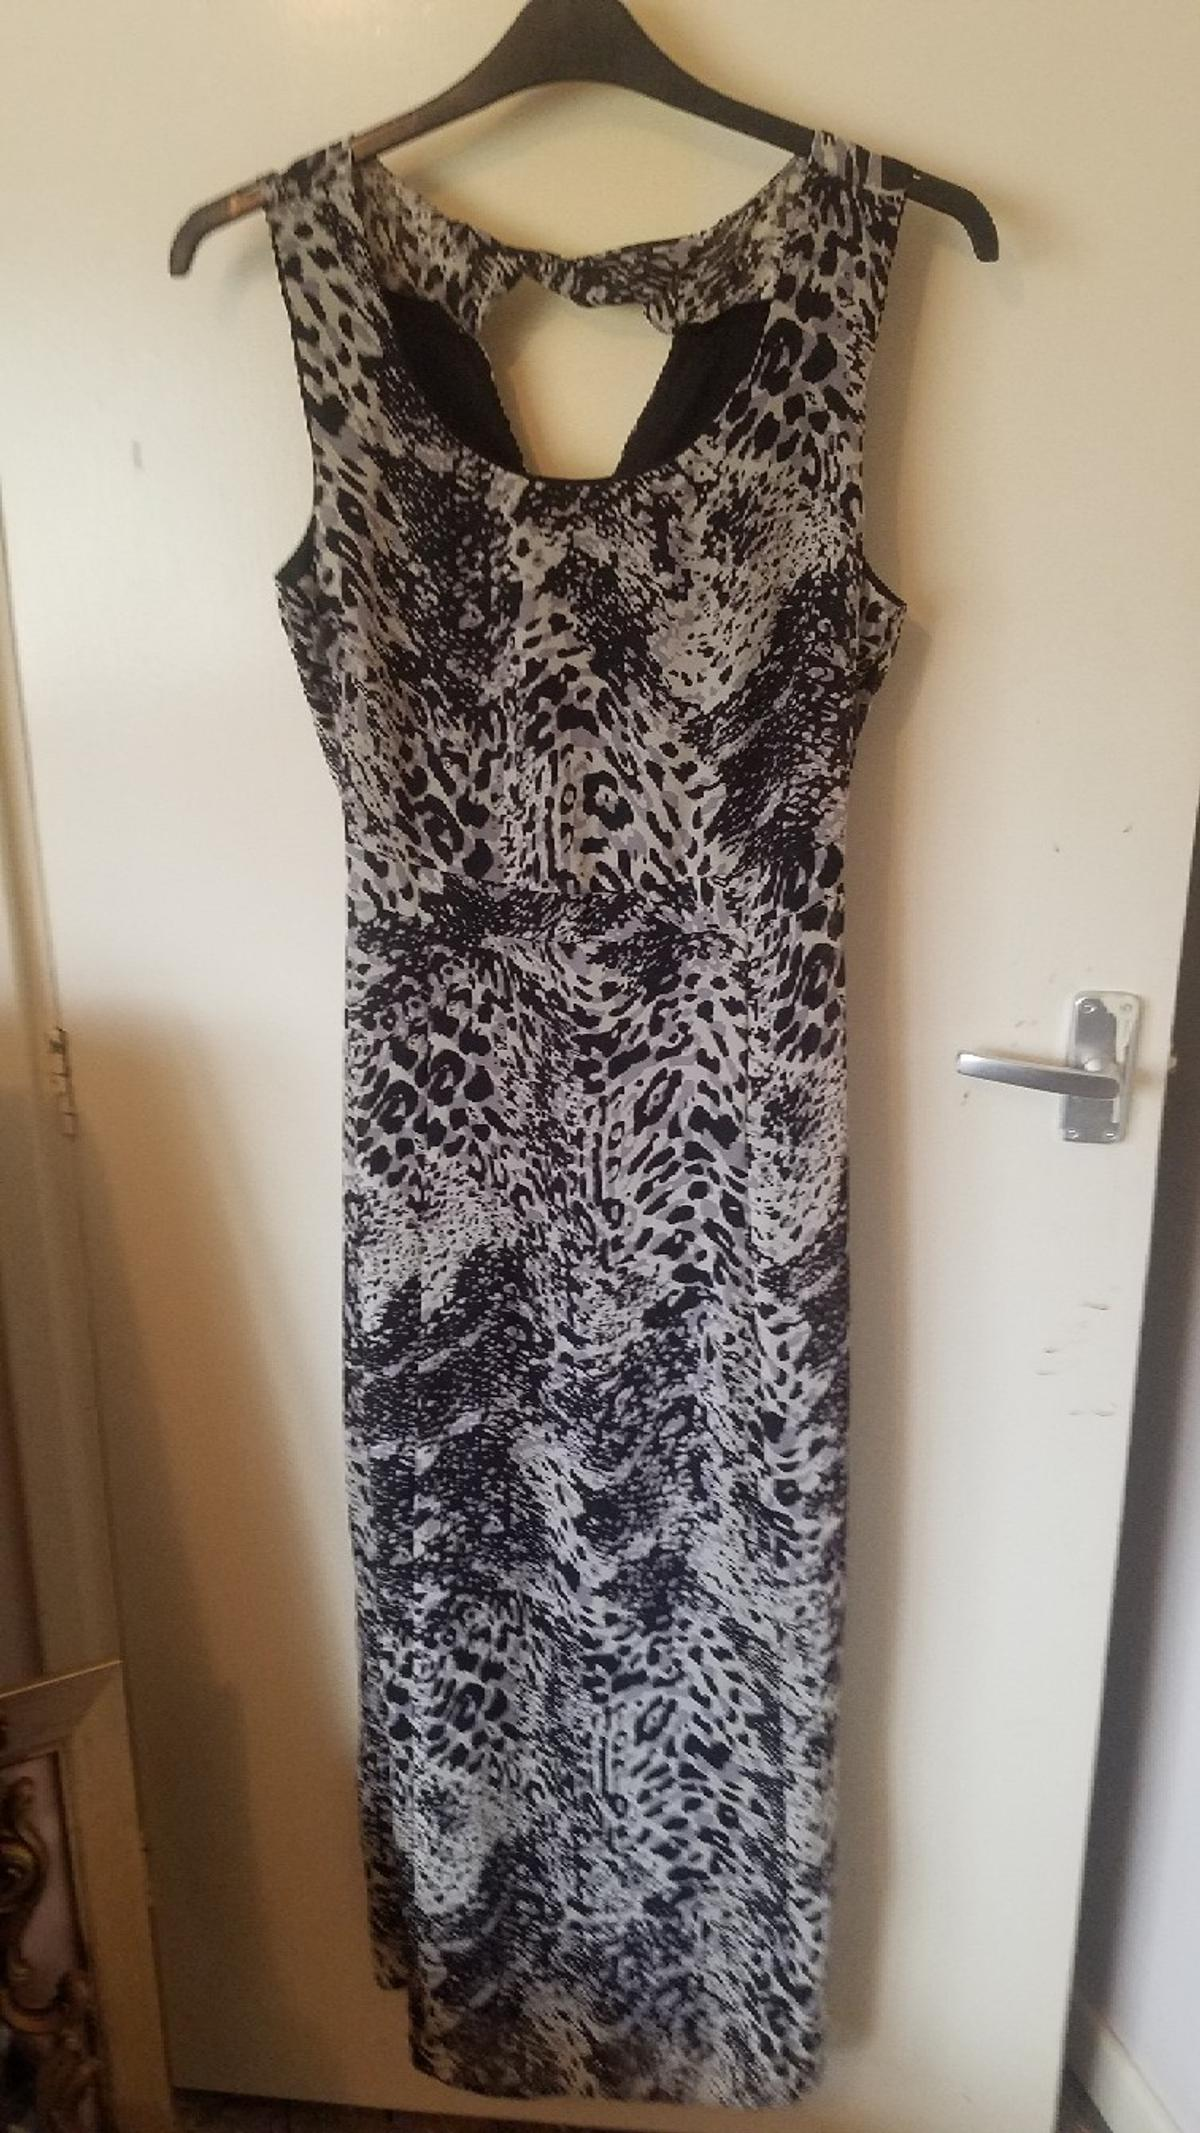 special section search for latest sleek SIZE 14. MARISOTA SUMMER DRESS. NEW in B63 Dudley for £4.00 ...